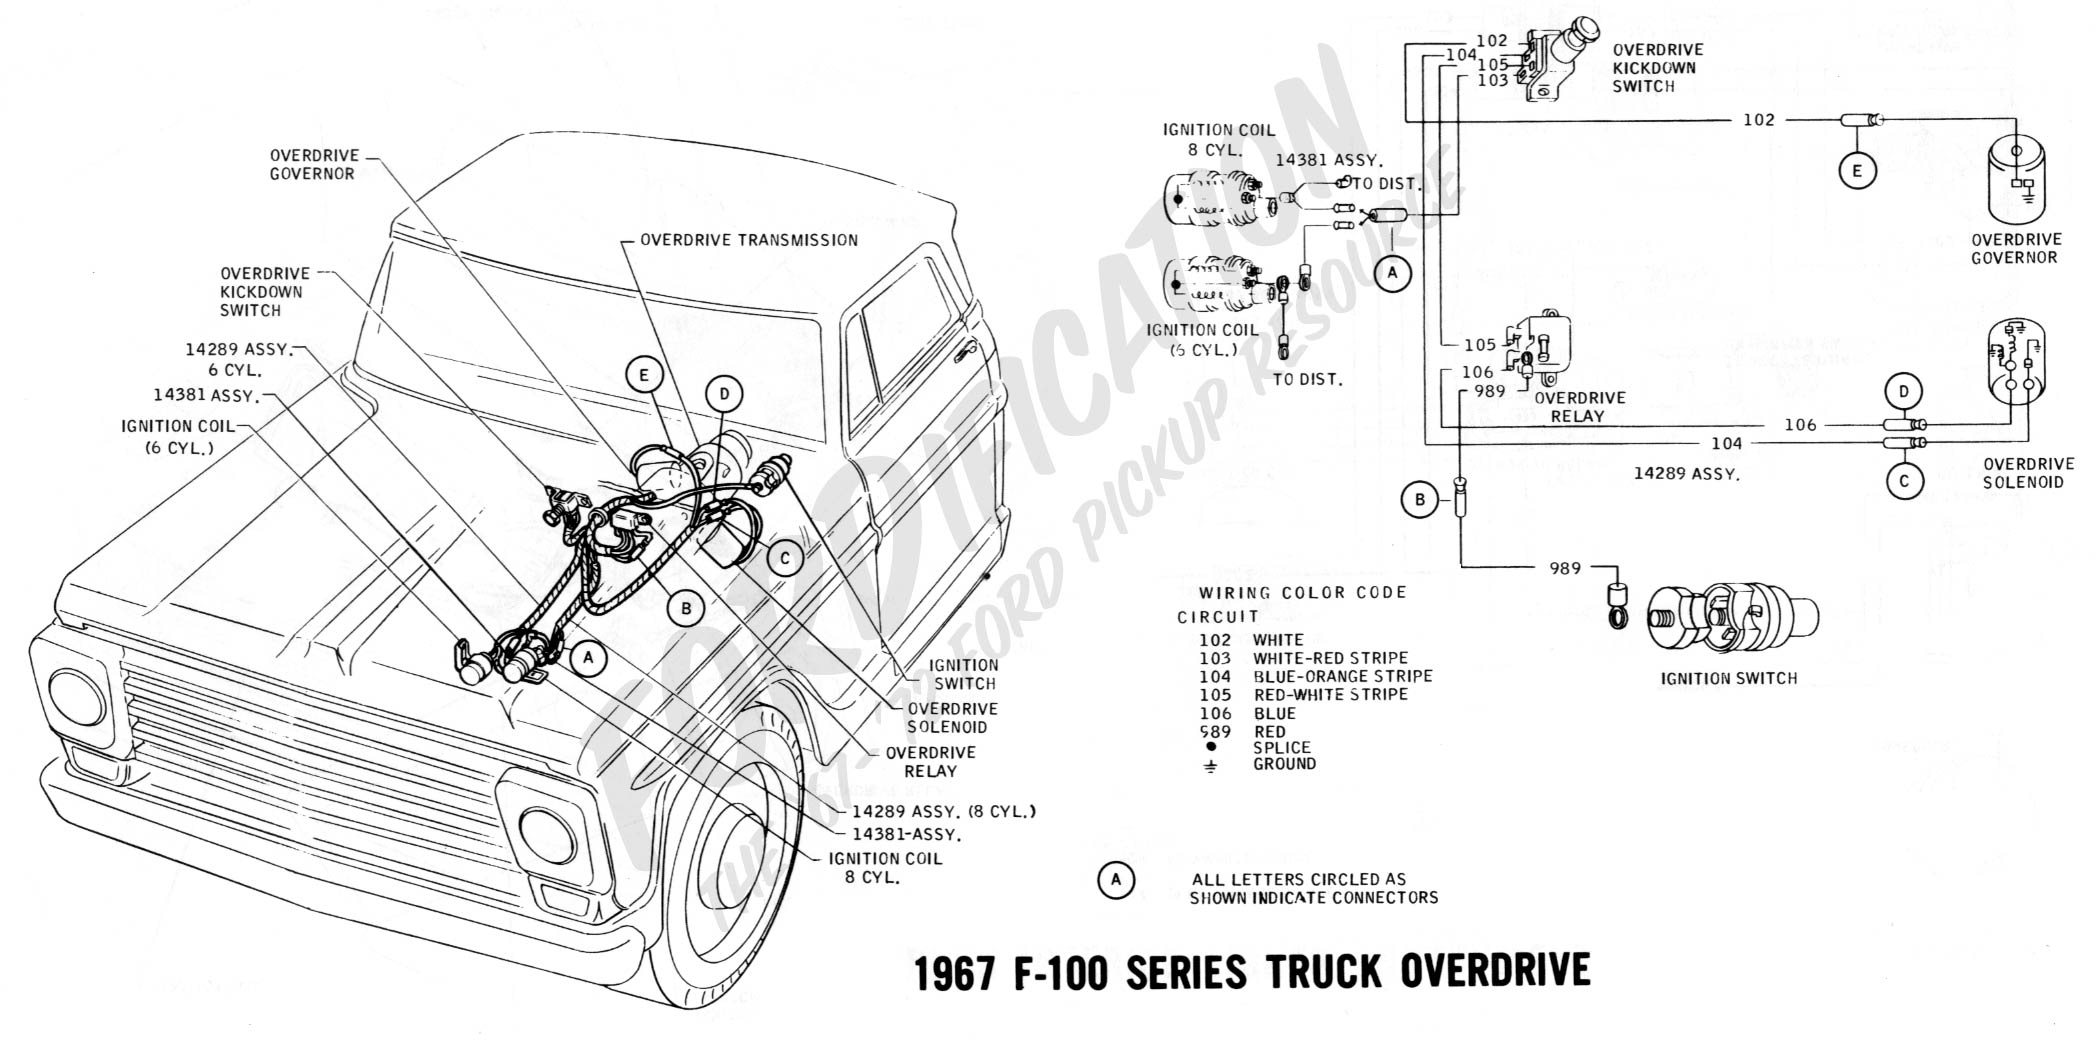 1968 F100 Fuse Box Data Wiring Schema 1967 Chevy C10 Diagram Schematic Ford Truck Technical Drawings And Schematics Section H Hood